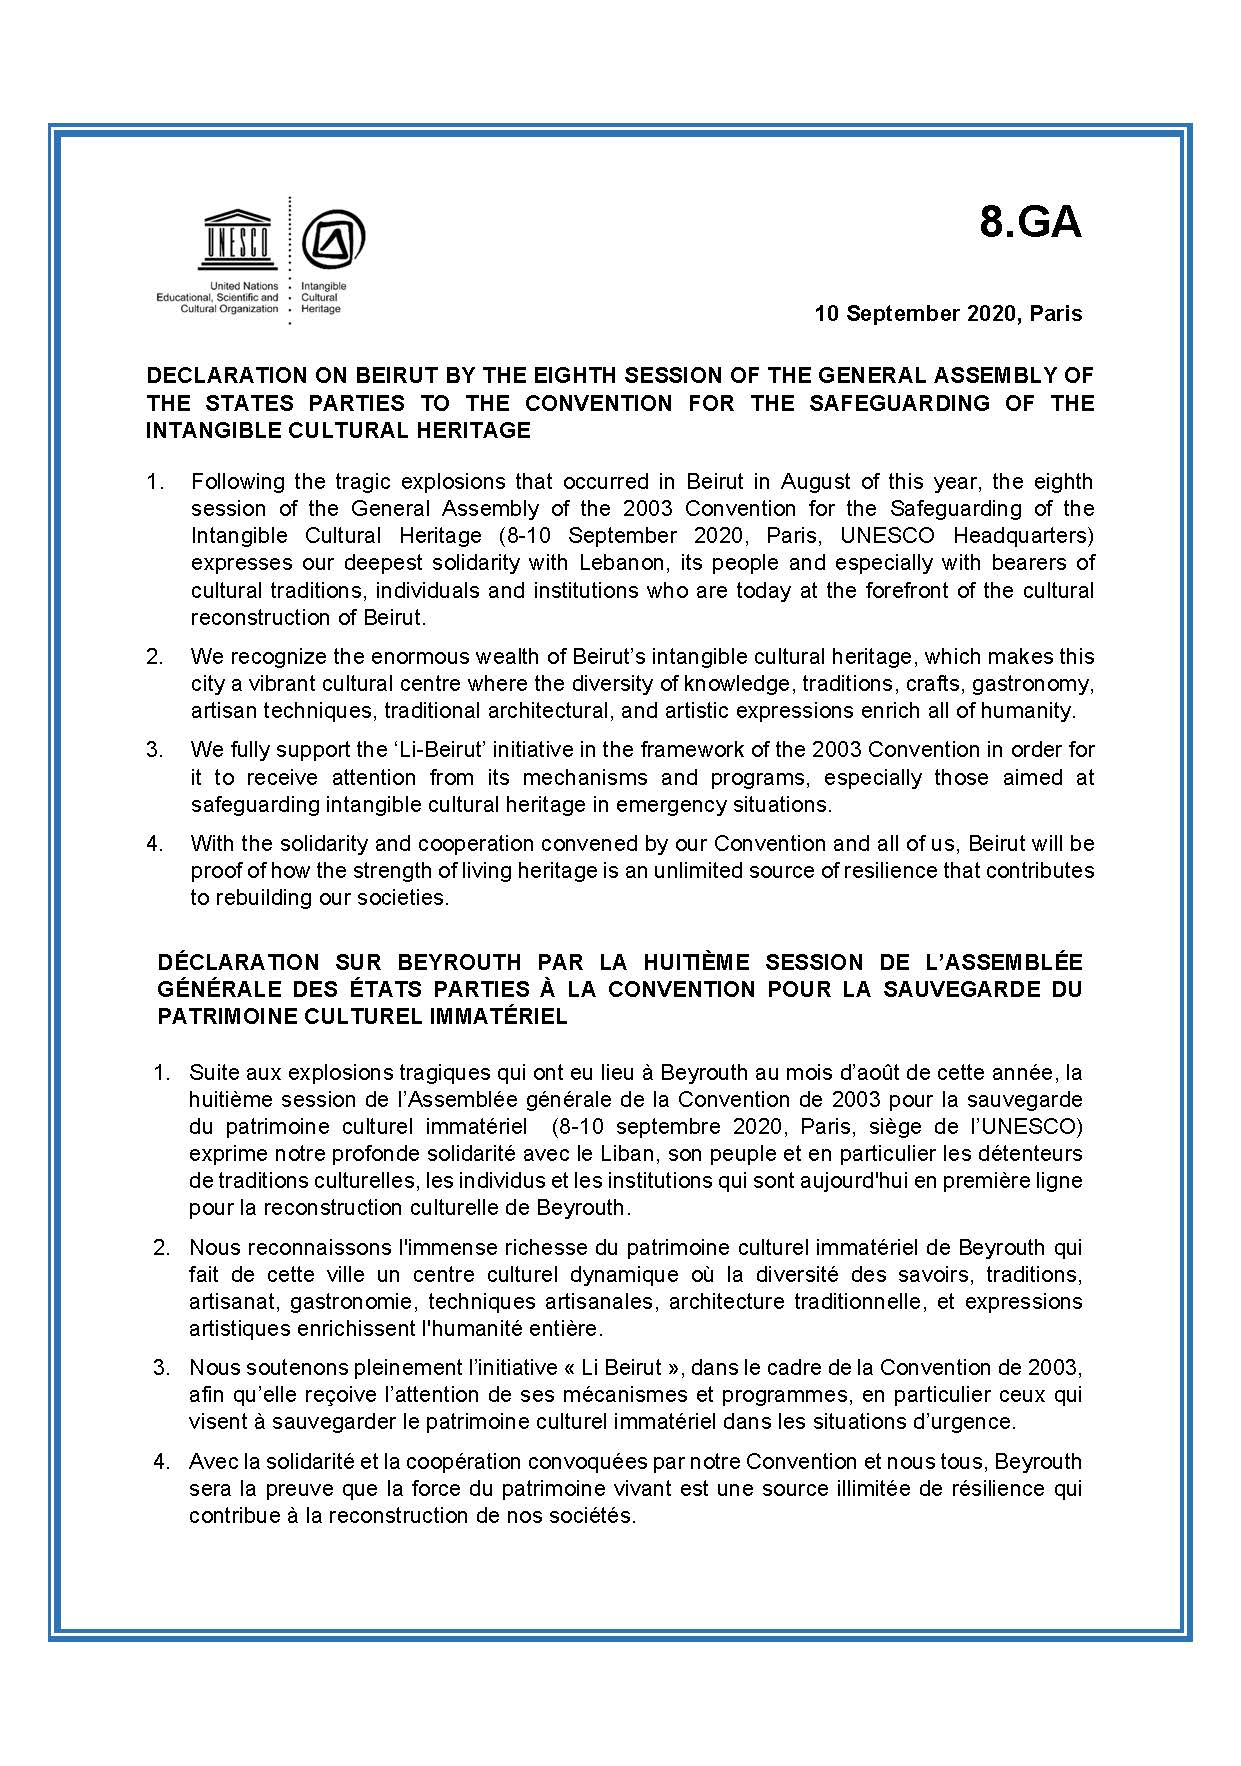 DECLARATION ON BEIRUT BY THE EIGHTH SESSION OF THE GENERAL ASSEMBLY OF THE STATES PARTIES TO THE CONVENTION FOR THE SAFEGUARDING OF THE INTANGIBLE CULTURAL HERITAGE